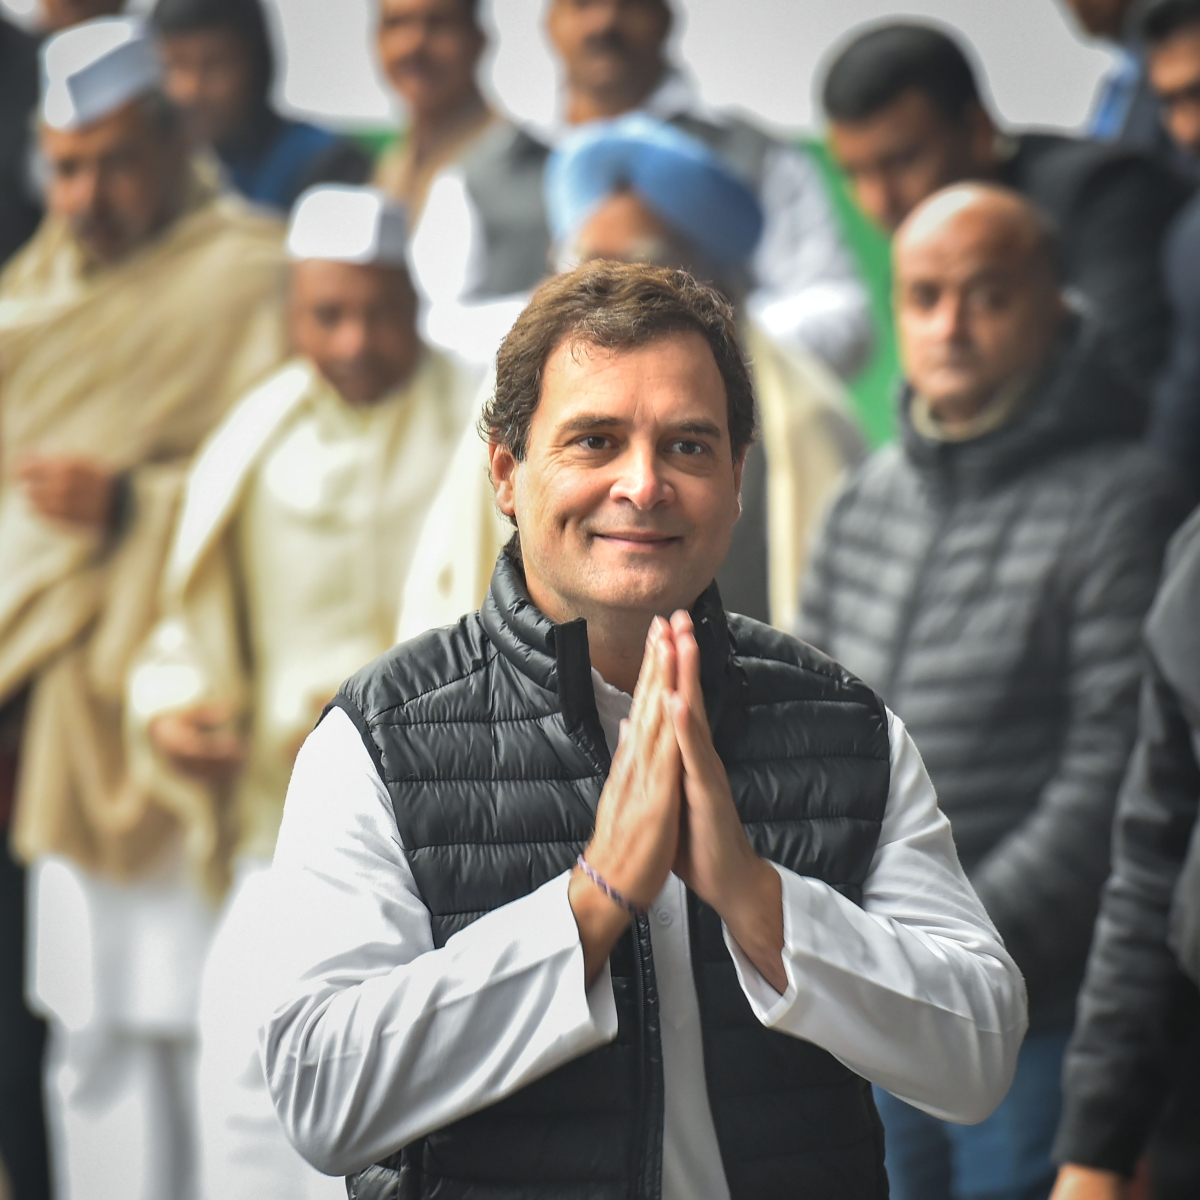 'Where is Rahul Gandhi?': Twitter asks after Congress leader gives CWC meeting a miss